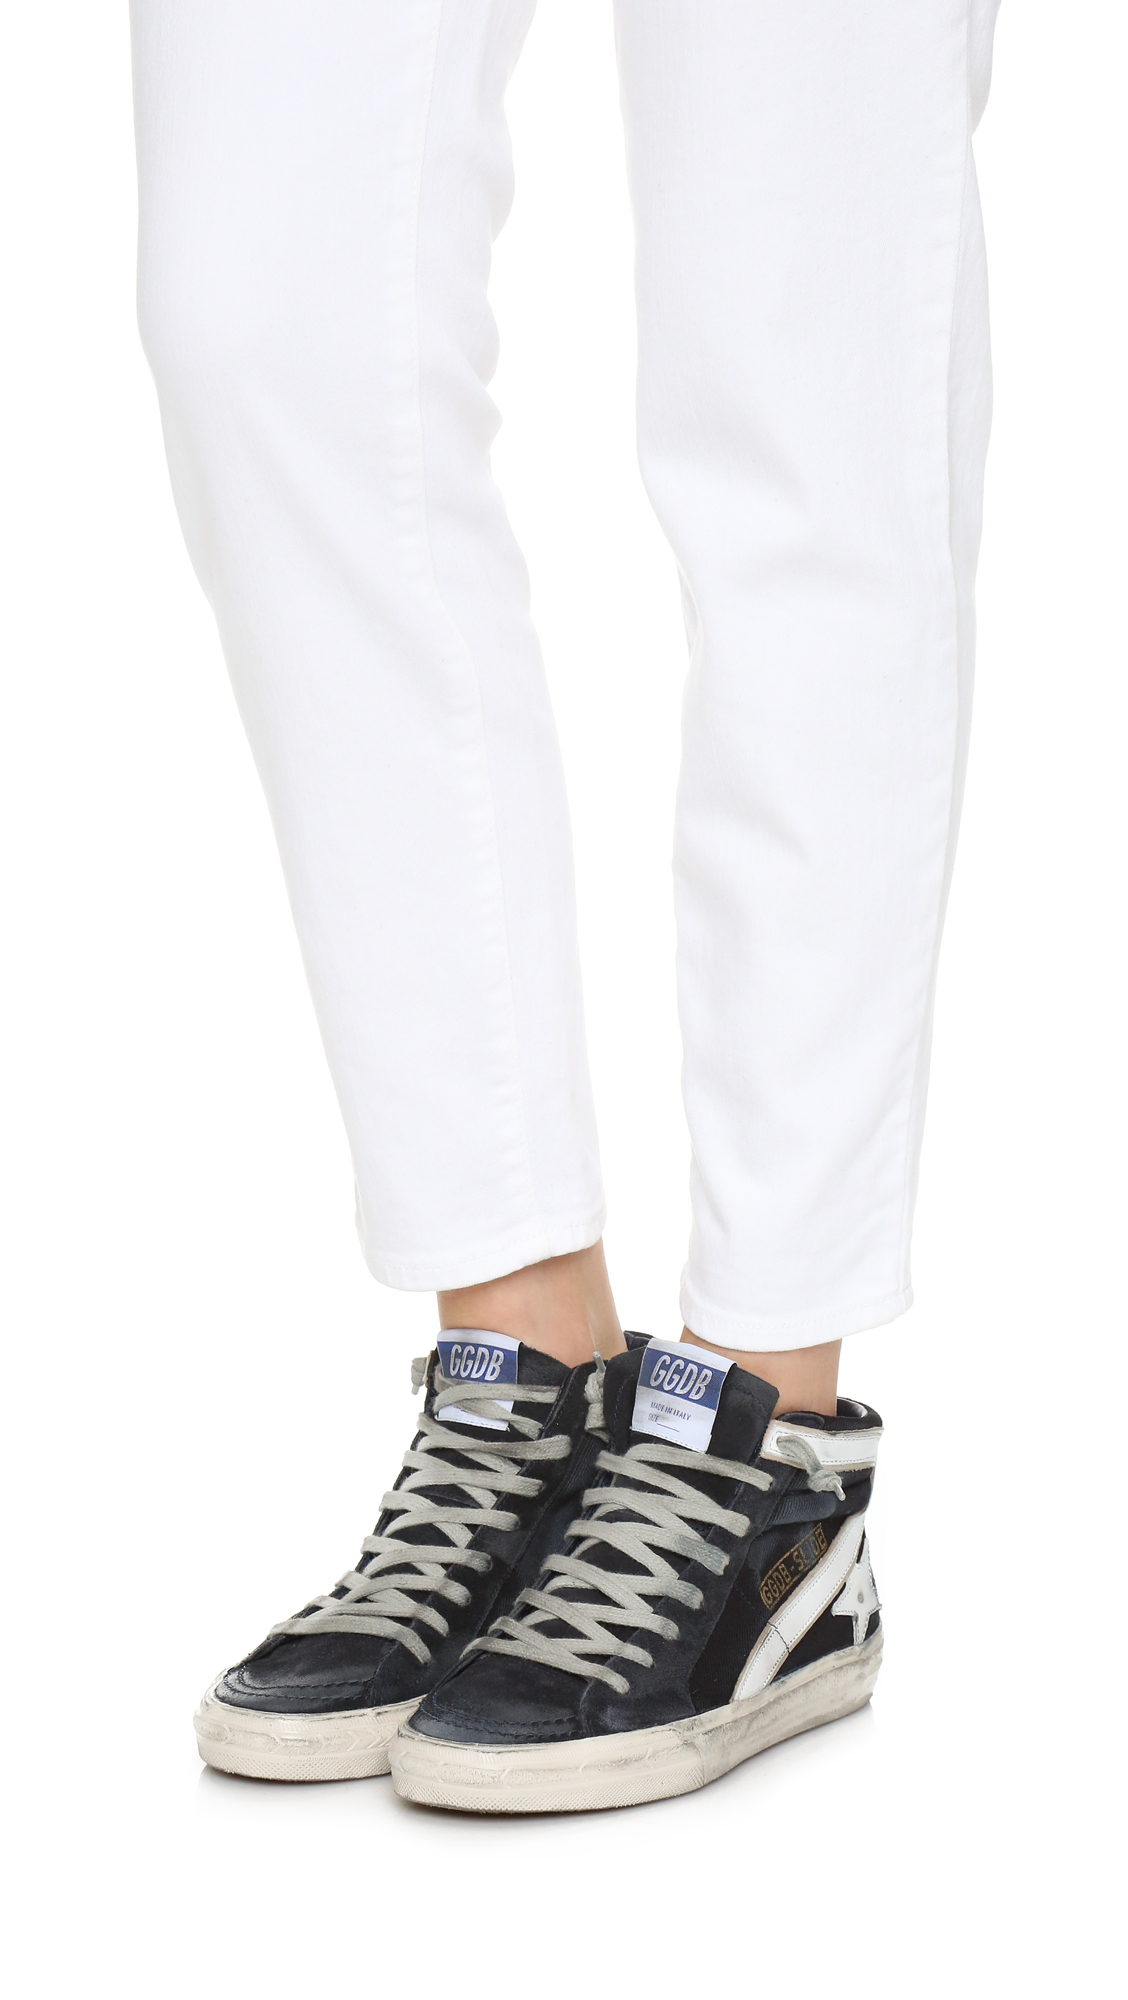 758a56b81ca19 Lyst - Golden Goose Deluxe Brand Slide High Top Sneakers in Blue